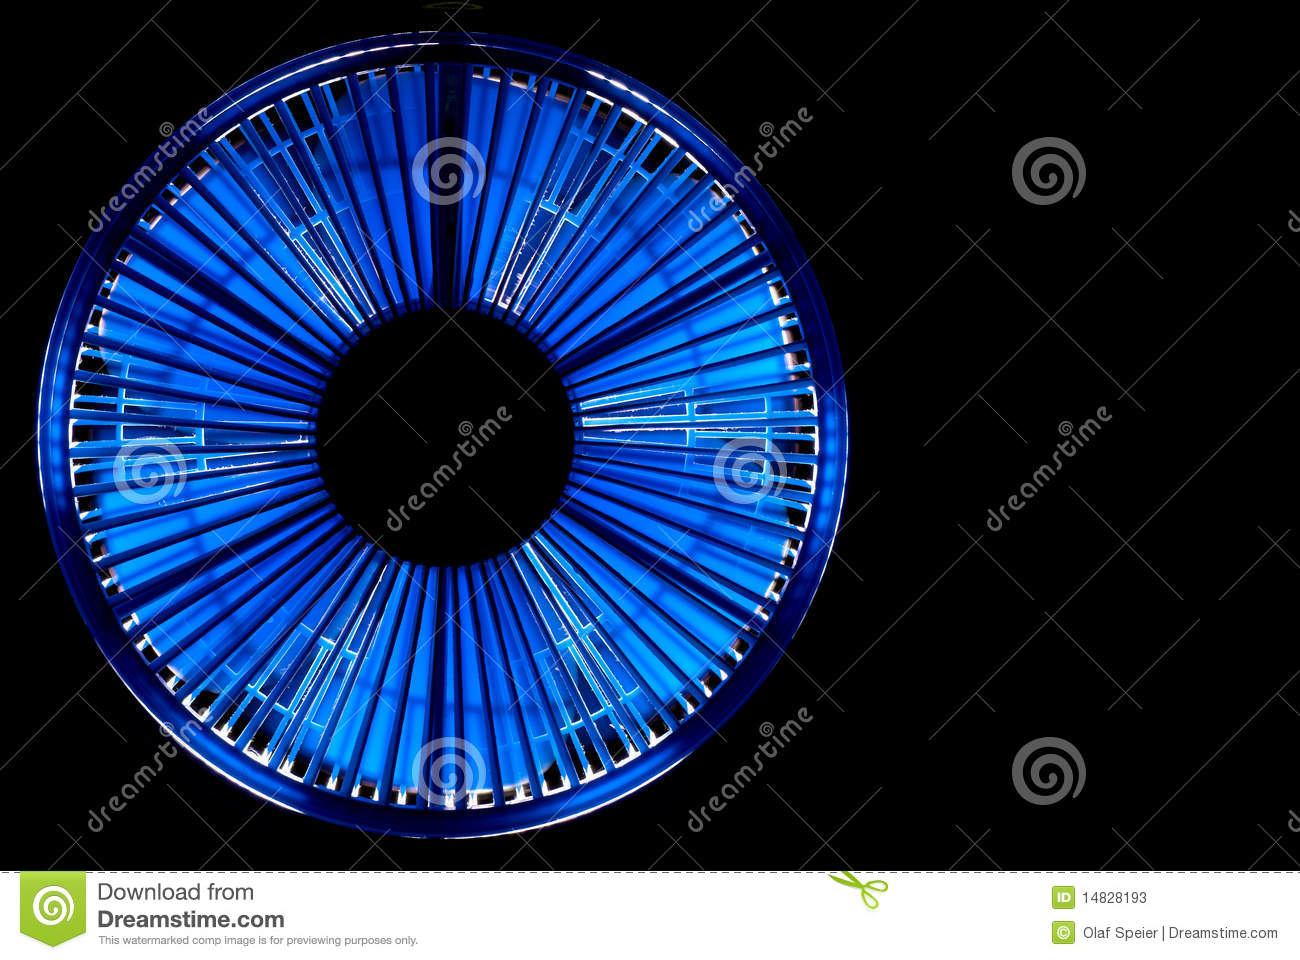 Dust Extractor Fan : Dust extractor fan stock photos image